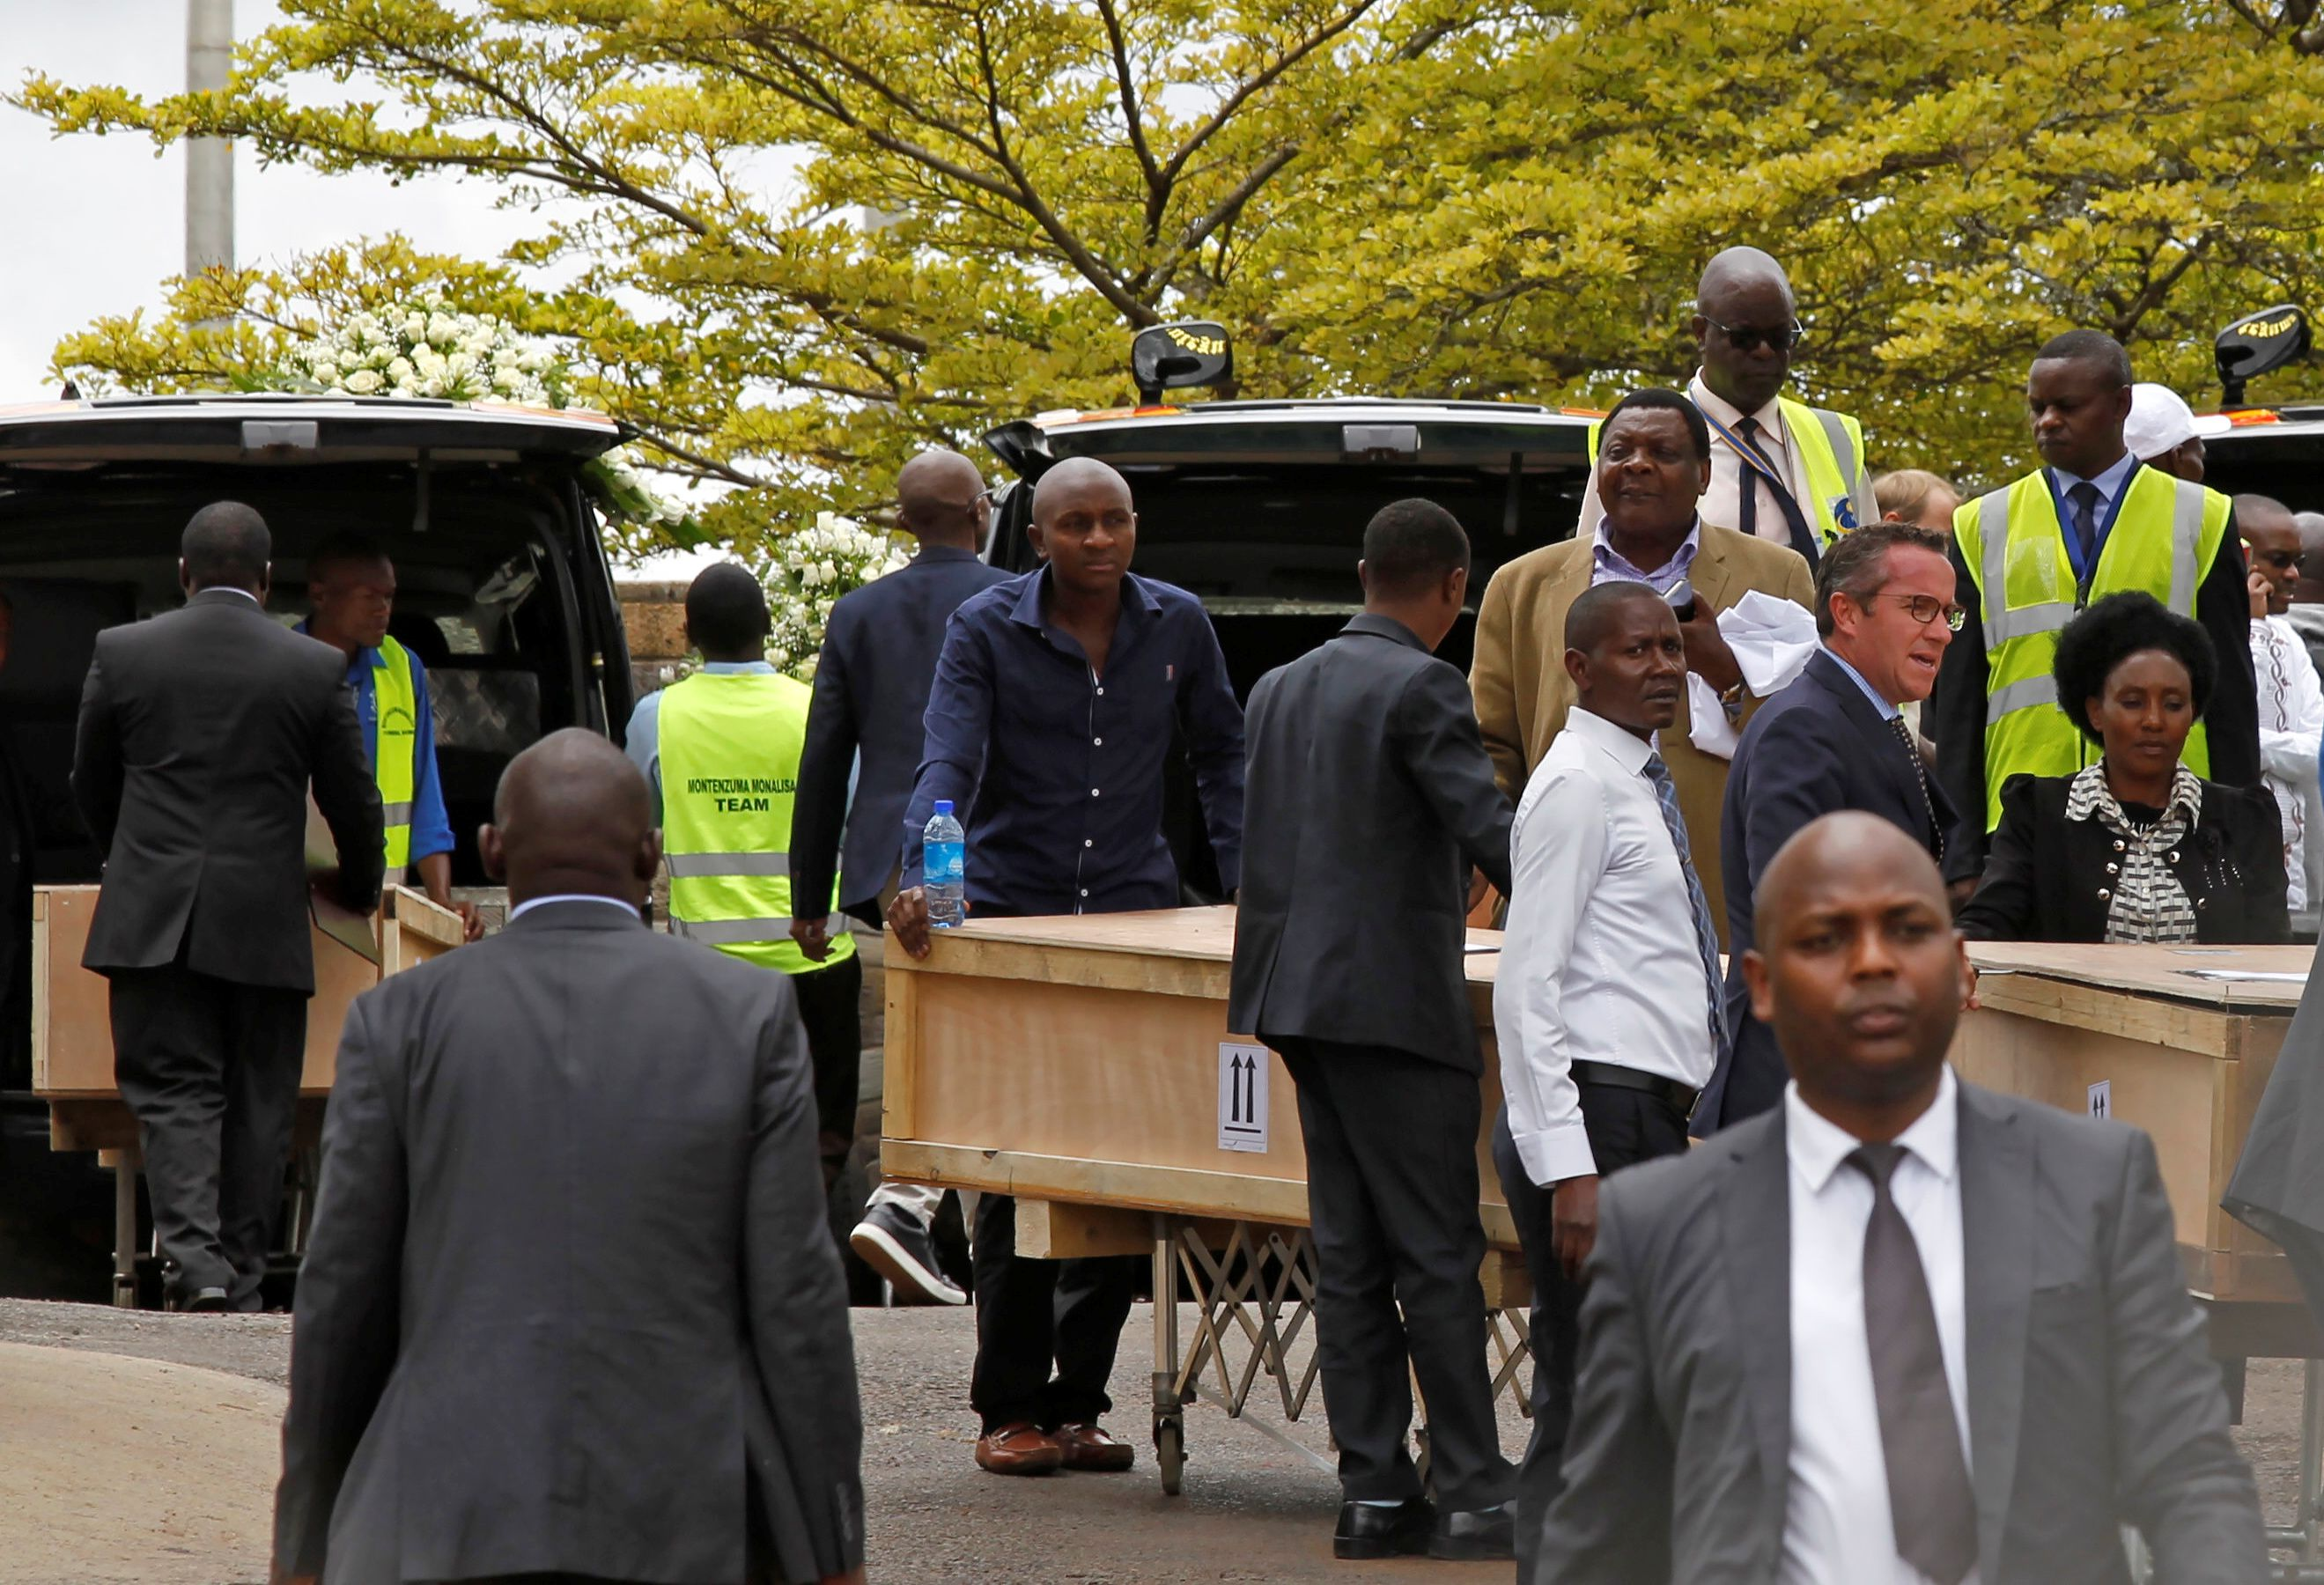 Remains of seven Canadians who died in Ethiopian Airlines crash return home